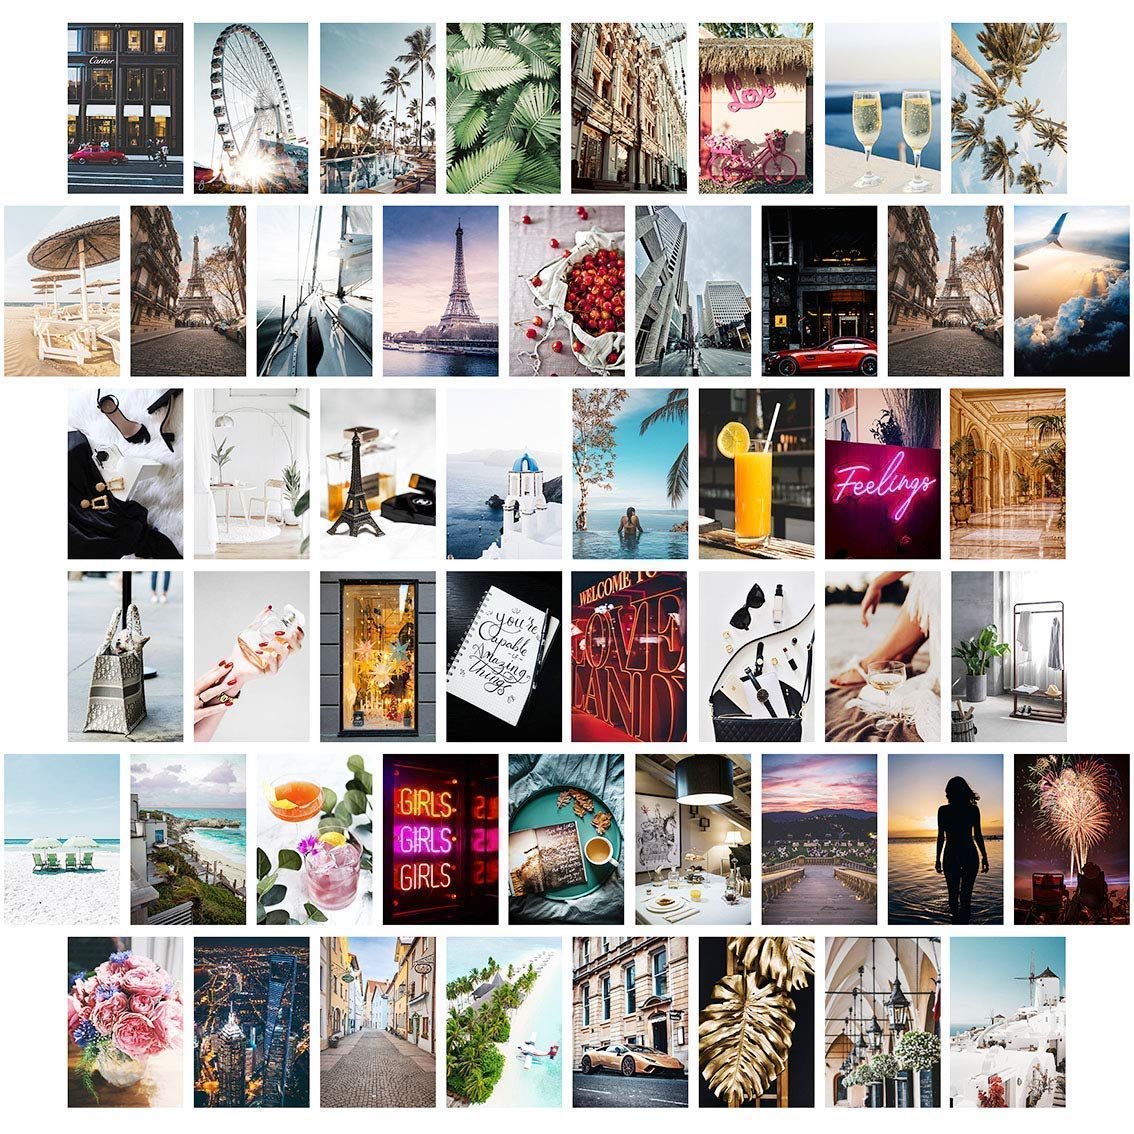 Wall Collage Kit Aesthetic Pictures, Aesthetic Room Decor, Bedroom Decor for Teen Girls, Wall Collage Kit, VSCO Room Decor, Photo Wall, Aesthetic Posters, Collage Kit (50 PCS 4x6 inch)